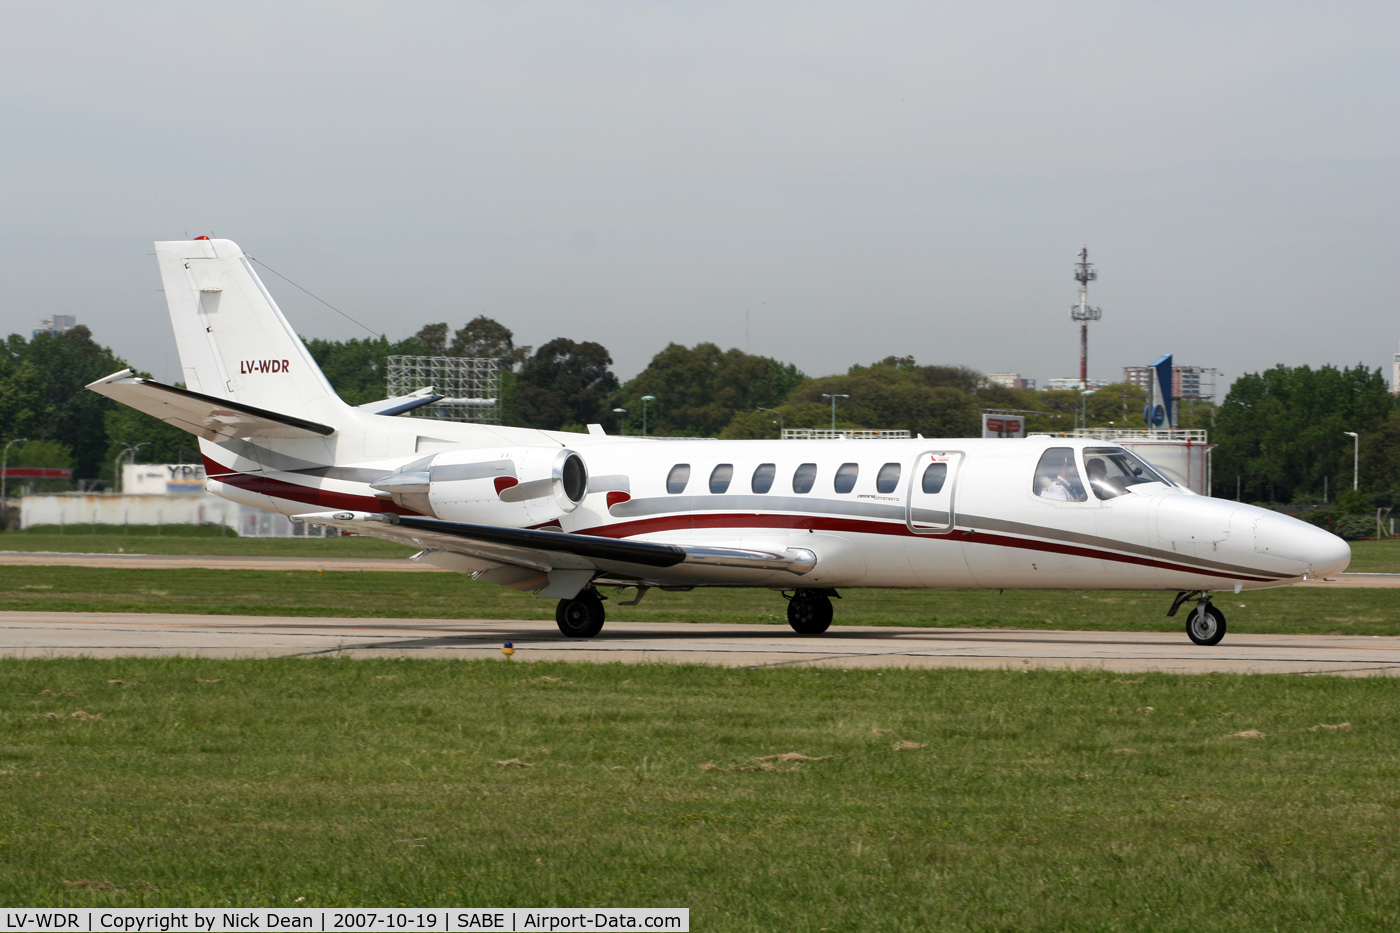 LV-WDR, Cessna 560 Citation V C/N 560-0227, SABE the C/N of this aircraft is 560-0227